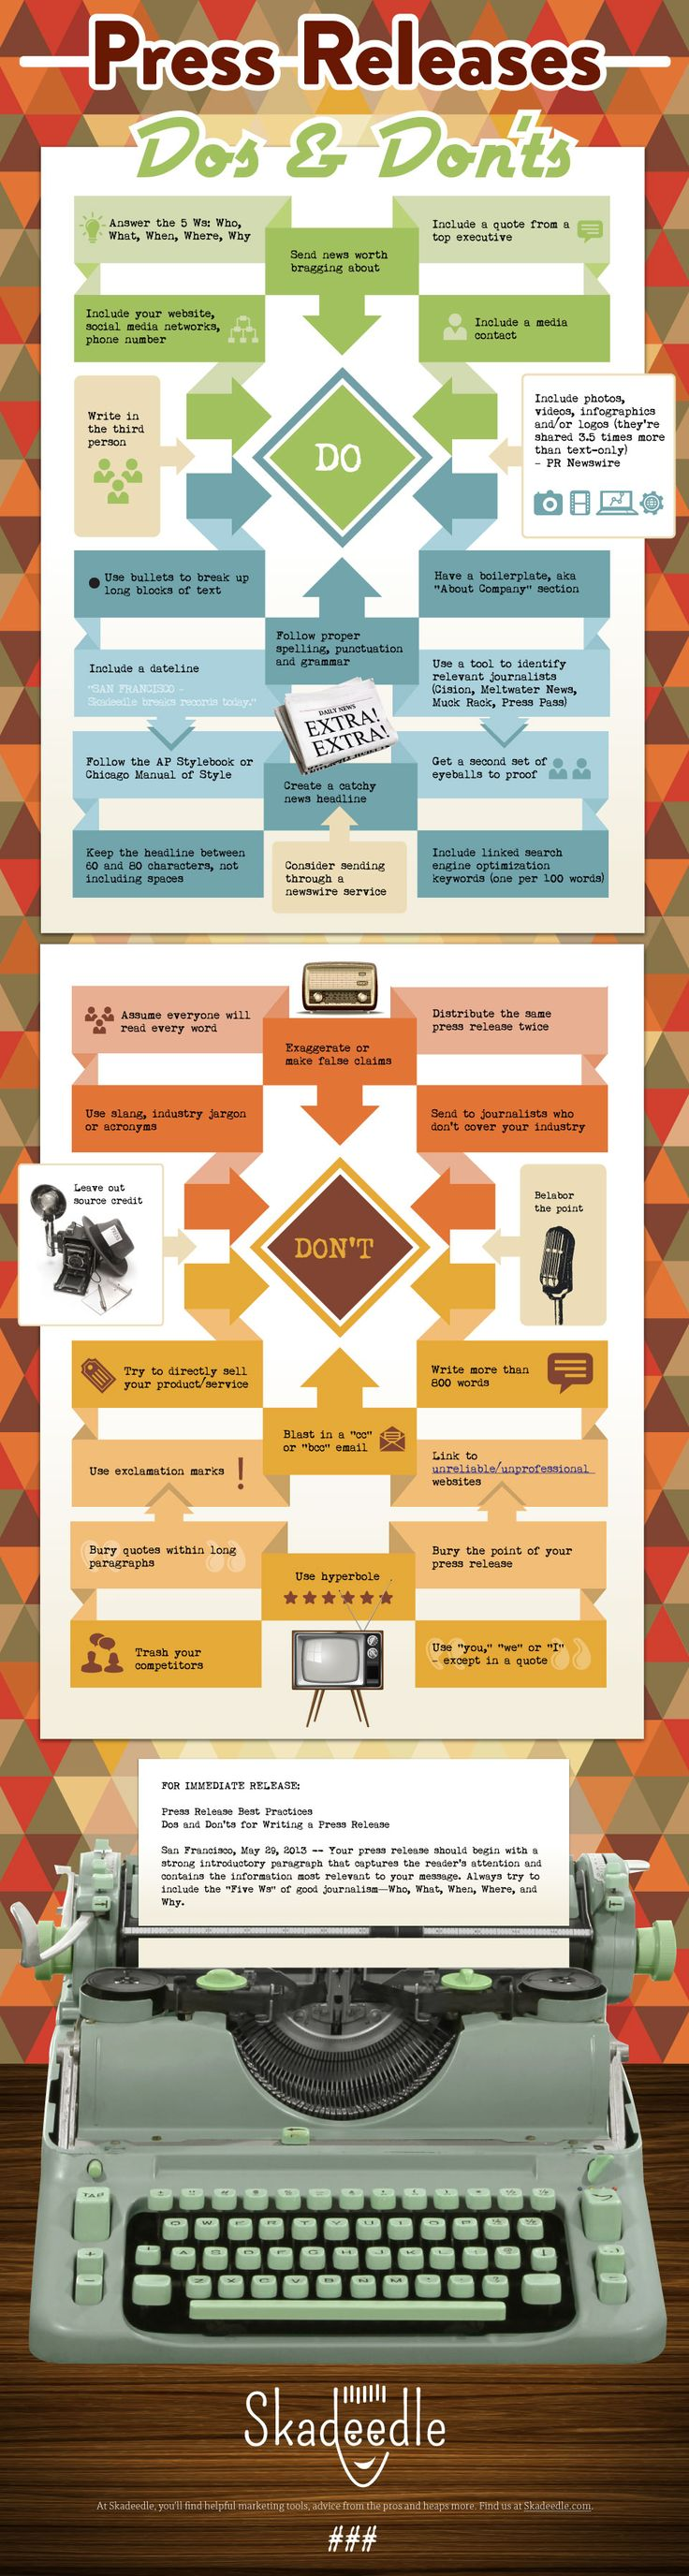 Press Releases Dos & Don'ts [Infographic] - An Infographic from Skadeedle